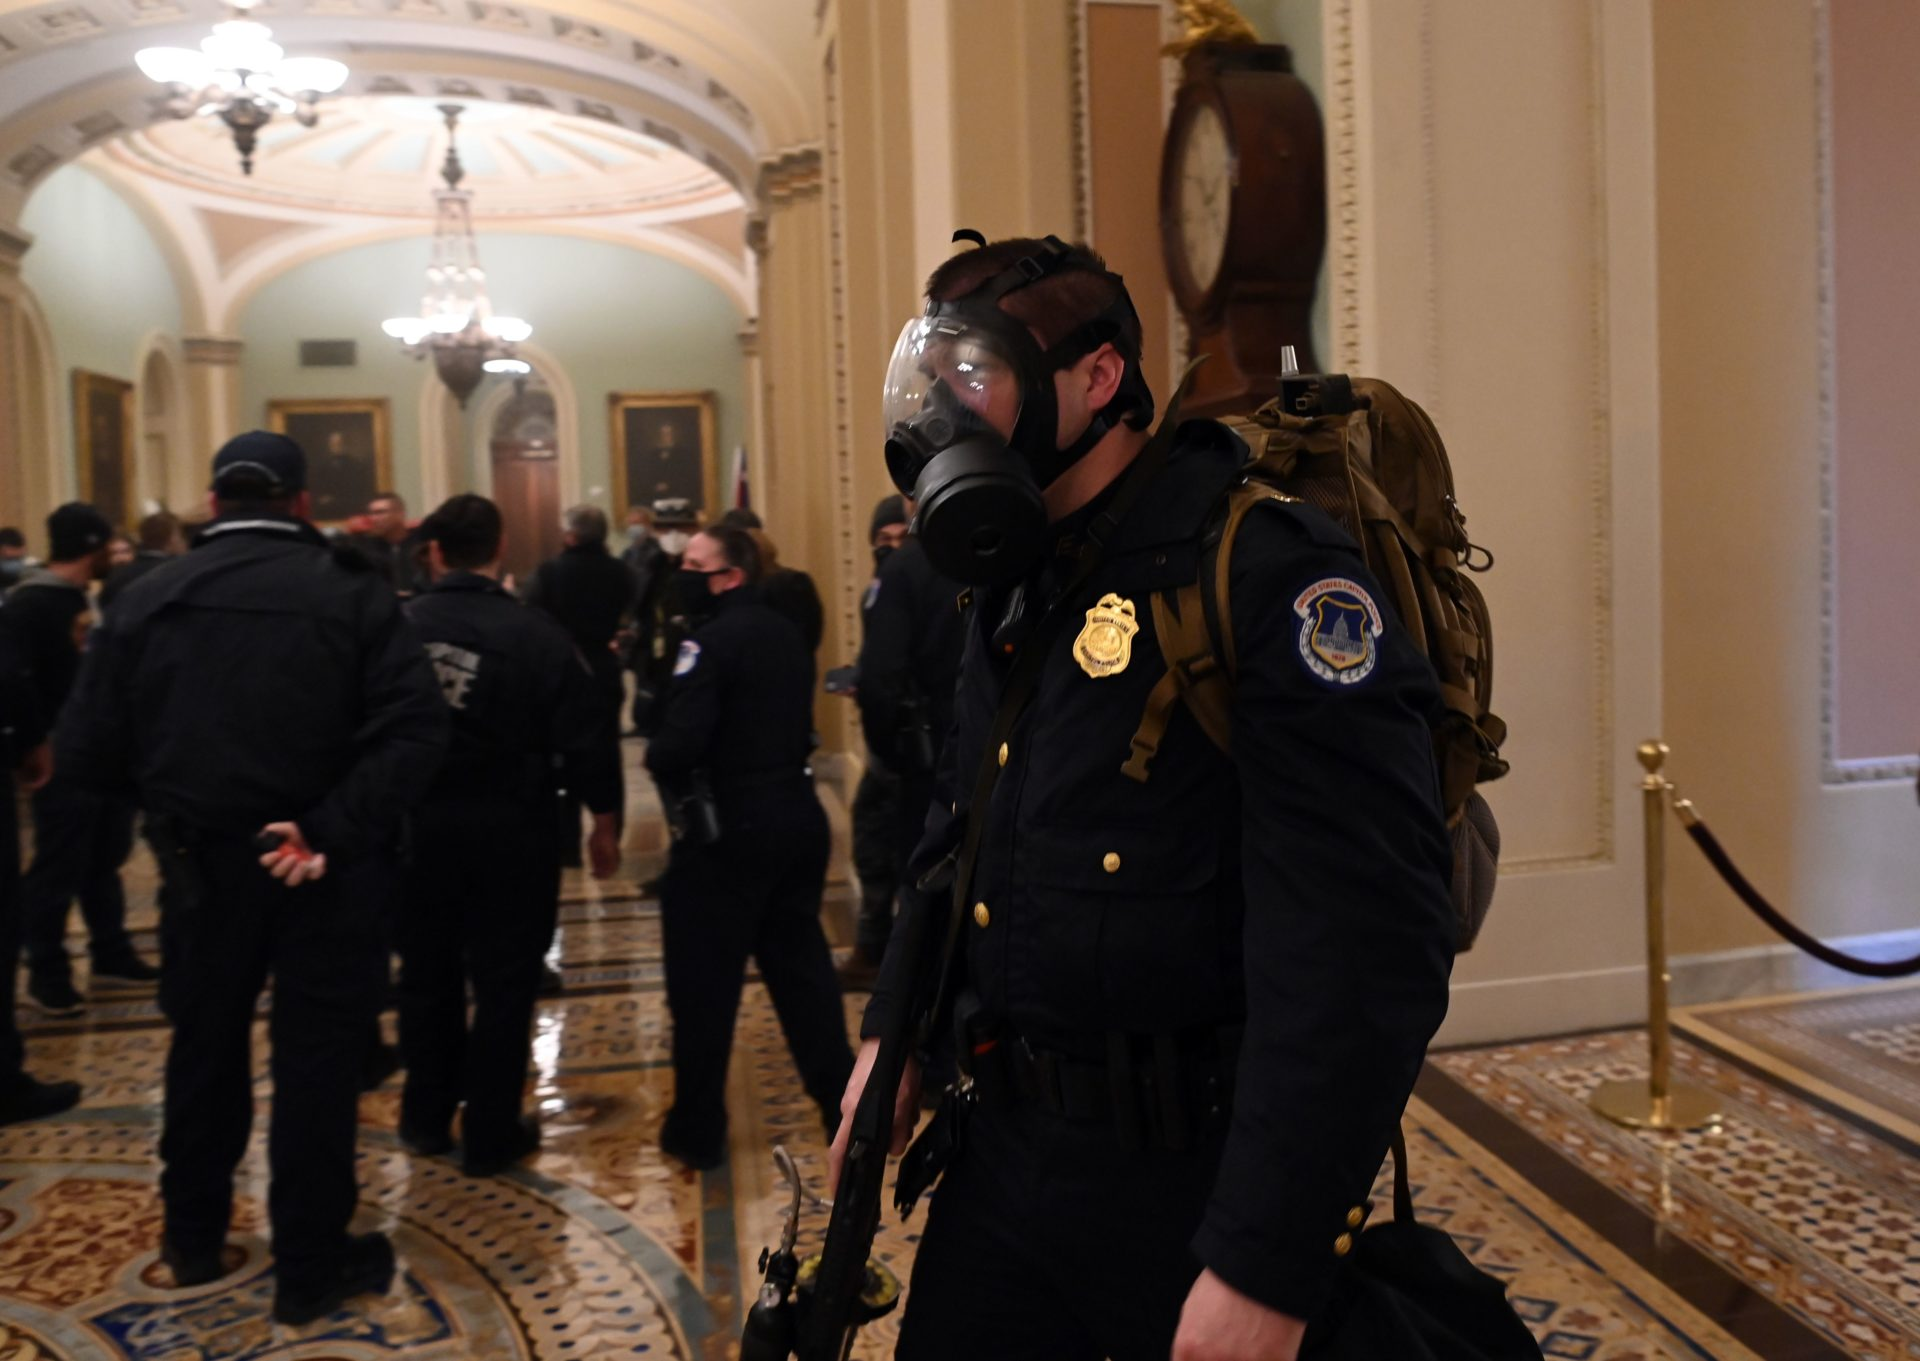 A U.S. Capitol police officer wears a gas mask as supporters of US President Donald Trump enter the Capitol on Jan. 6, 2021, in Washington, D.C. (Saul Loeb/AFP via Getty Images)